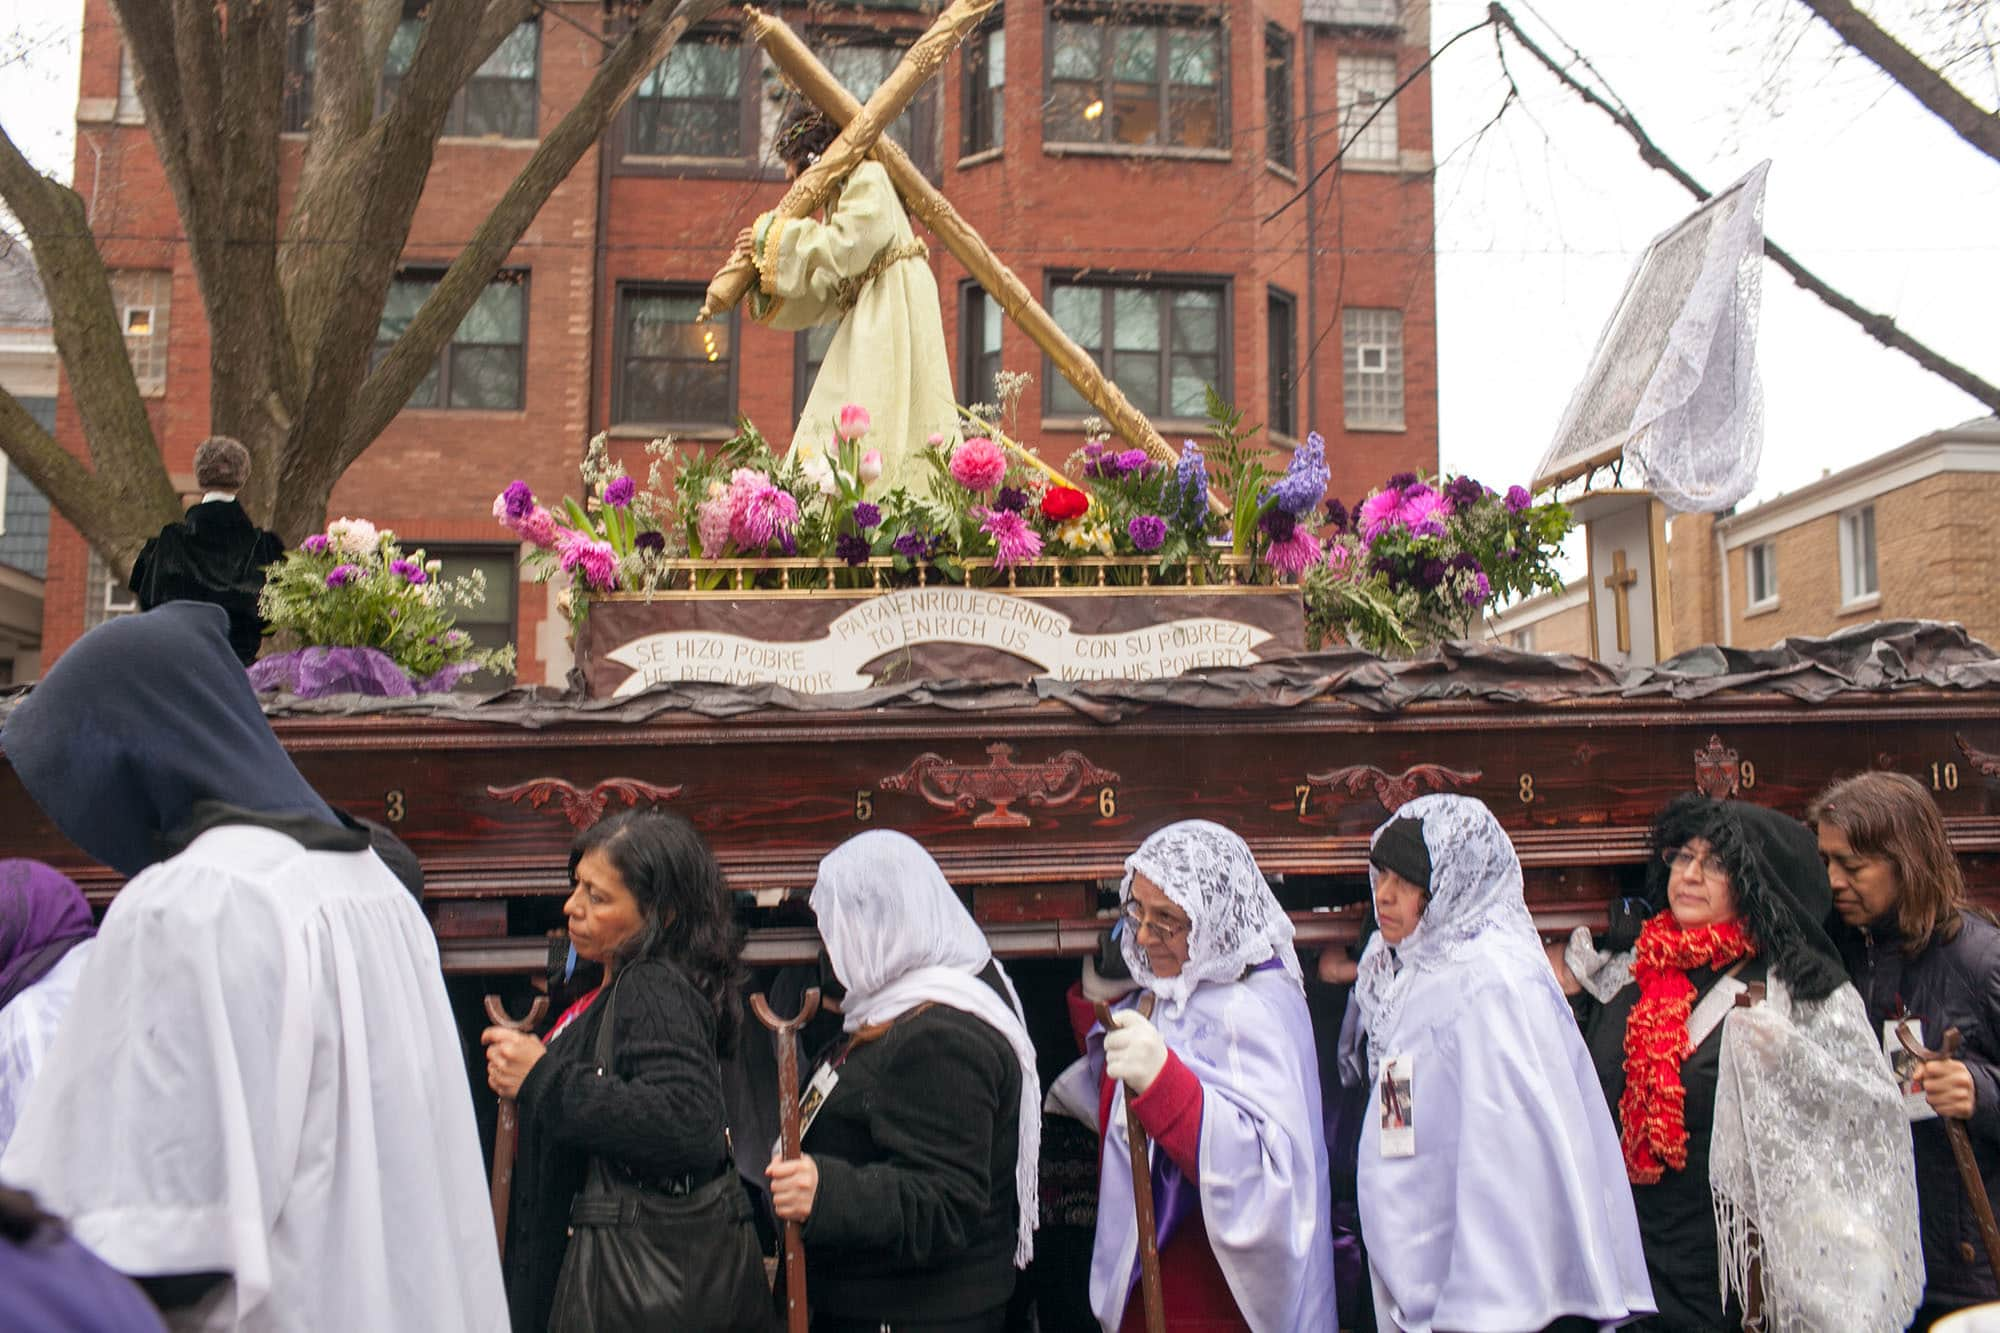 Semana Santa Holy Week Procession in Chicago, Illinois